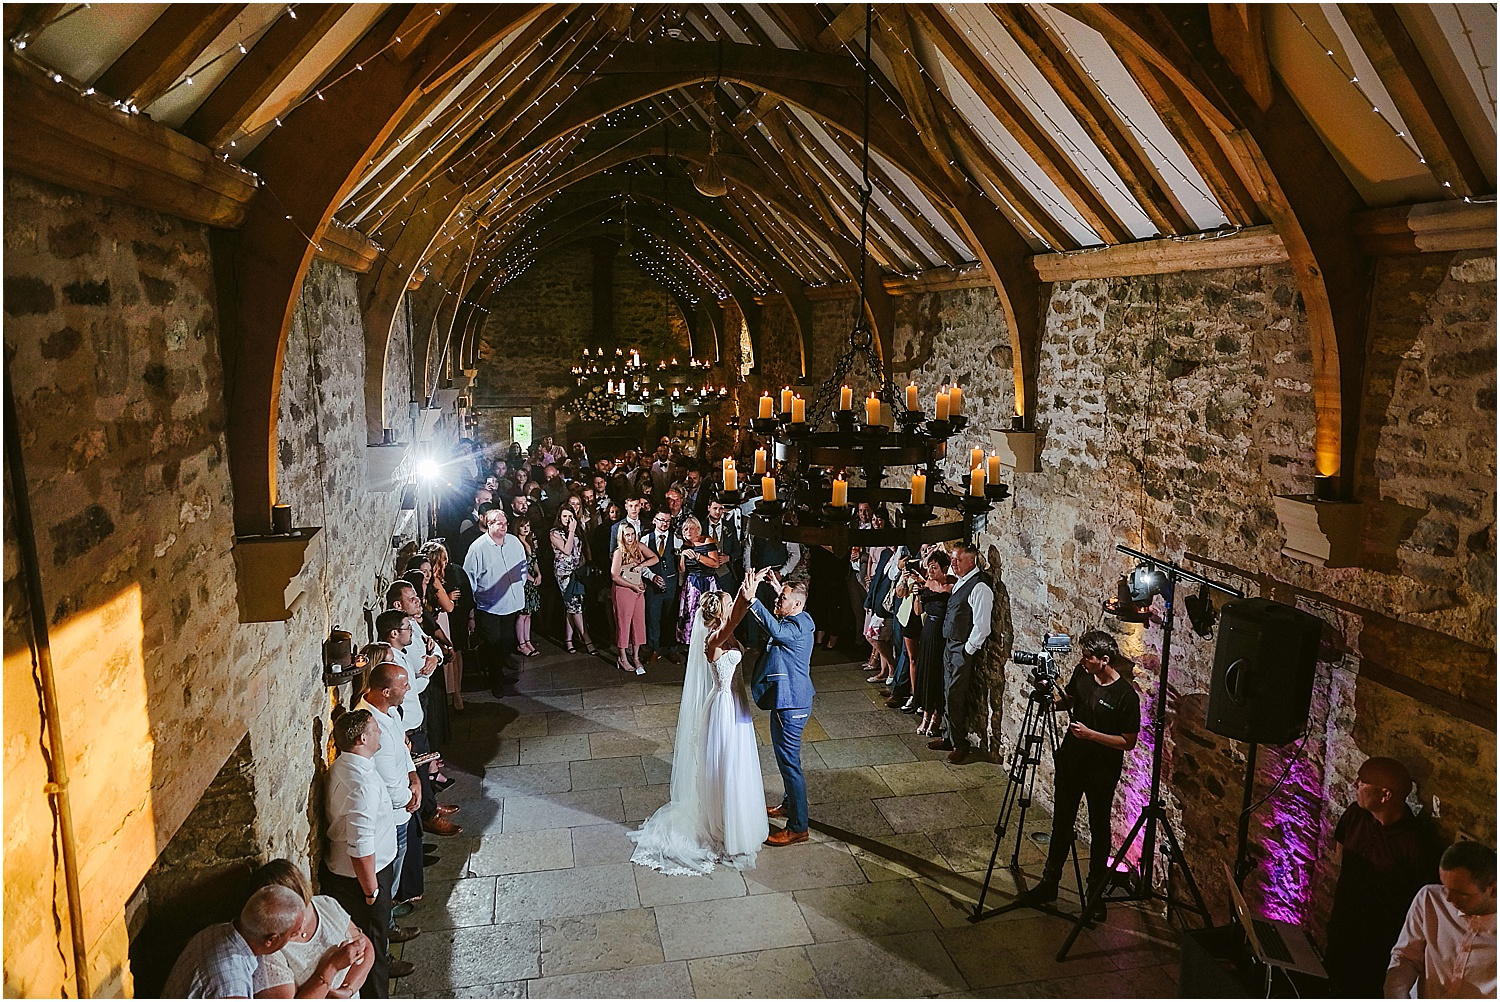 Wedding at Healey Barn - wedding photography by www.2tonephotography.co.uk 101.jpg